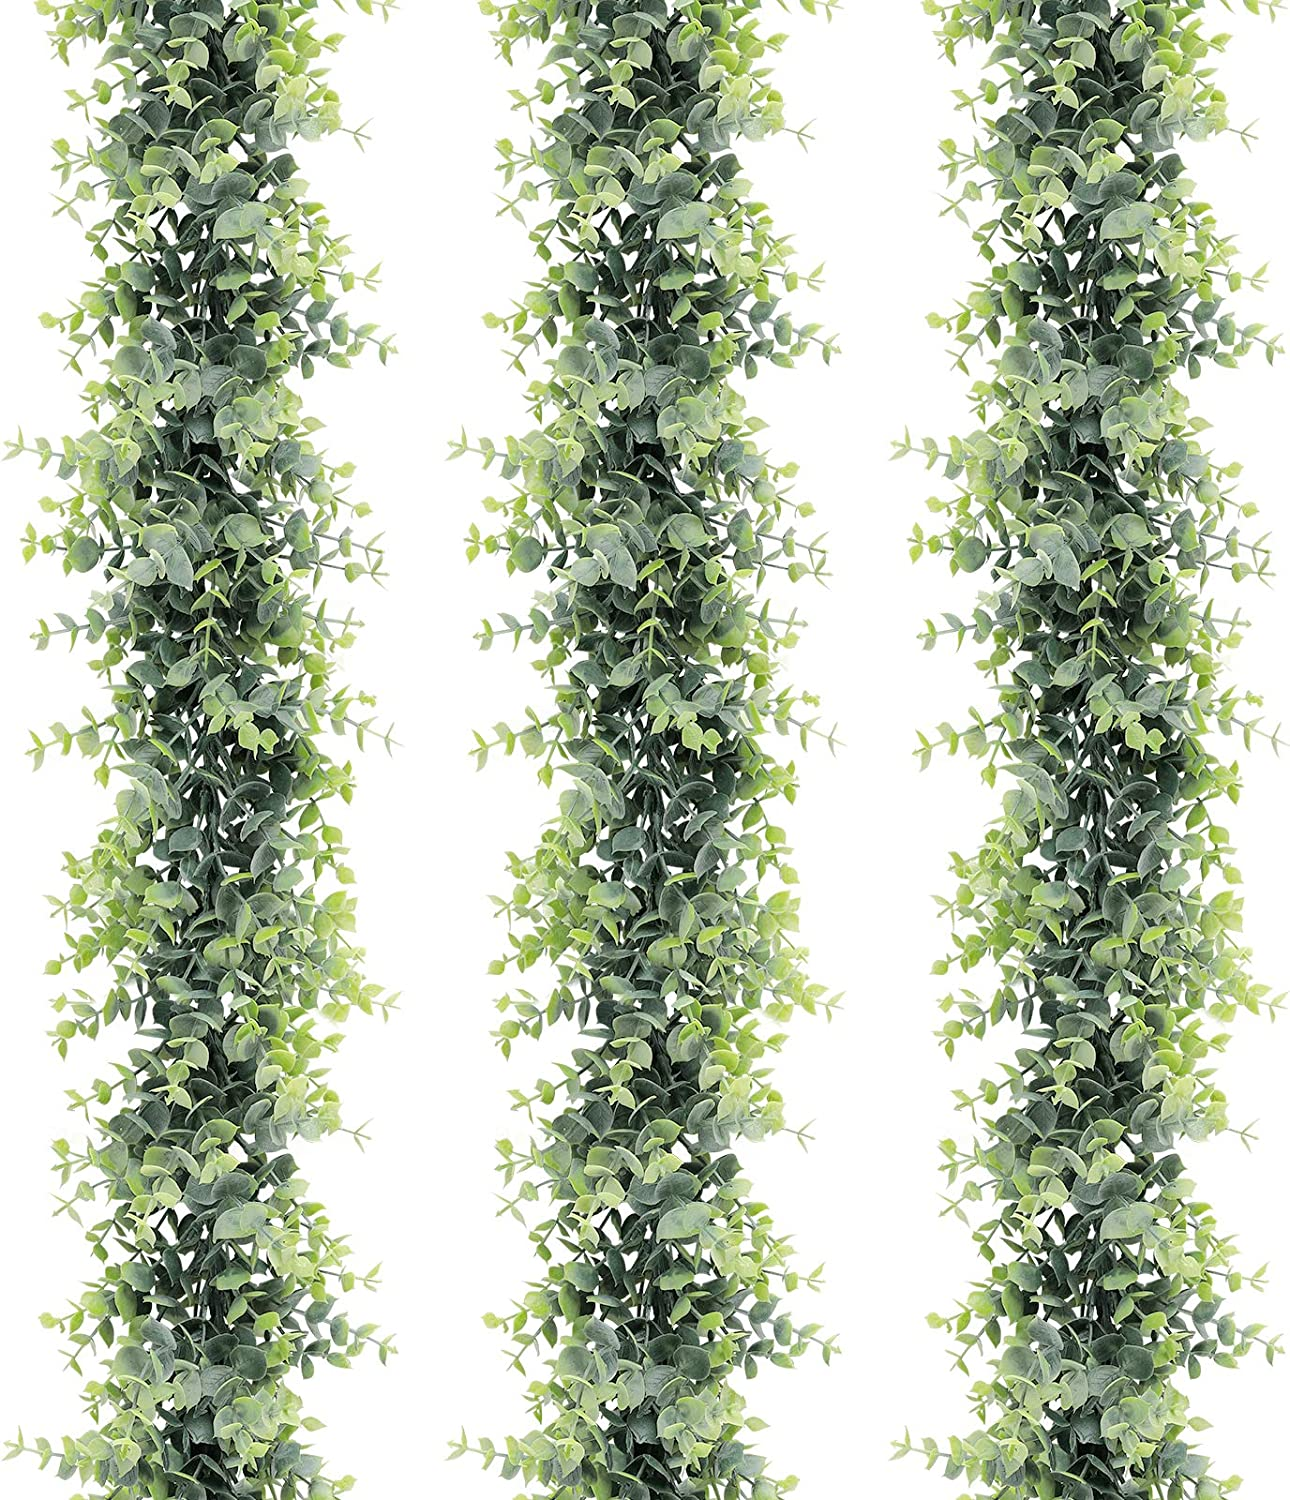 COCOBOO 3 Pack Artificial Eucalyptus Garland, Artificial Vines Faux Plant Eucalyptus Greenery Garland Wedding Arch Table Wall Mantle Spring Decor, 6 Feet/pcs Fake Boxwood Garland